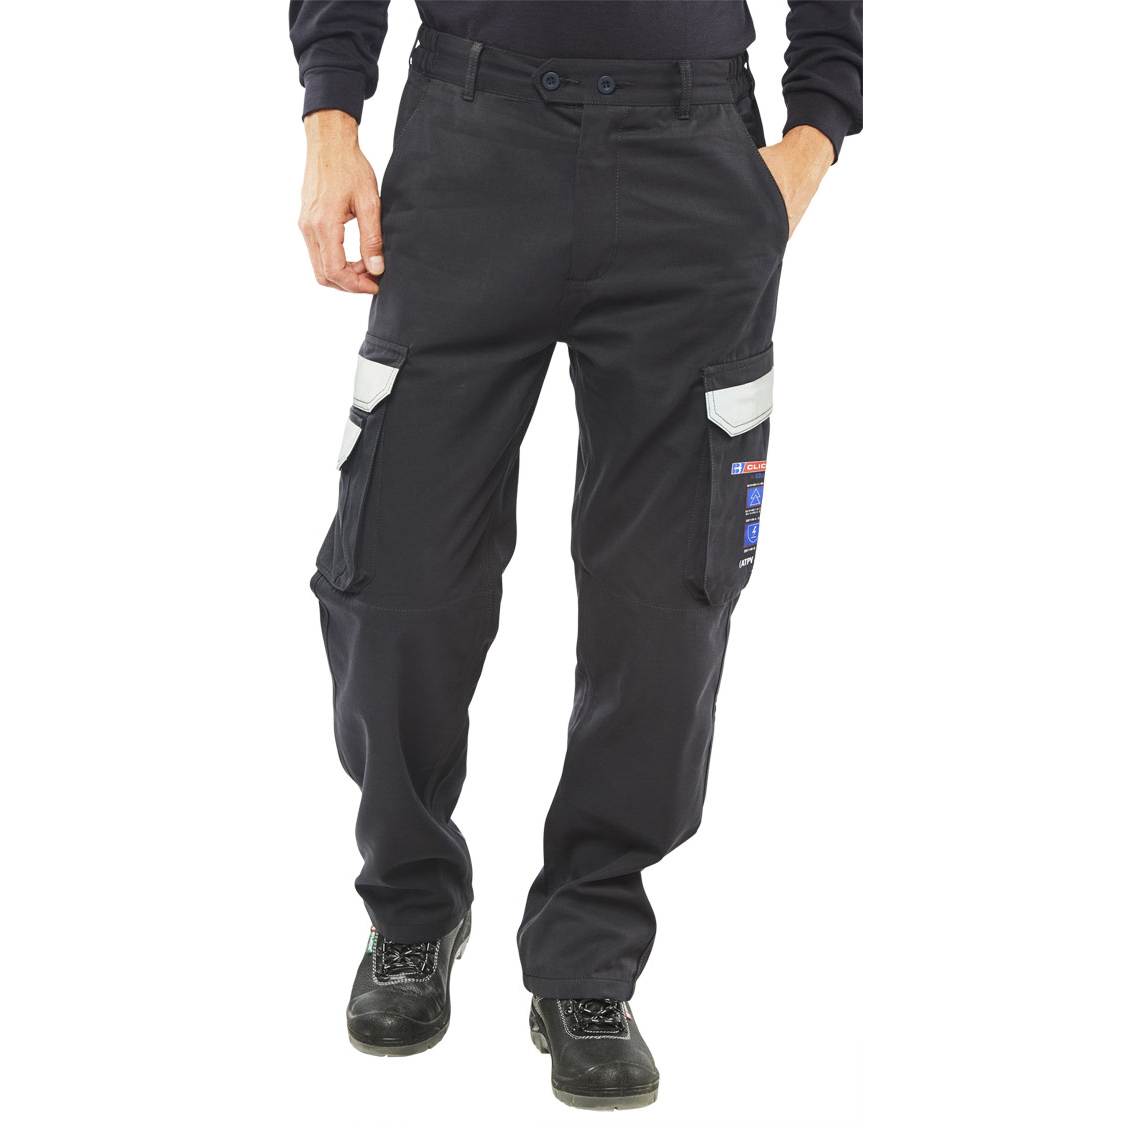 Fire Retardant / Flame Resistant Click Arc Flash Trousers Fire Retardant Navy Blue 30-Short Ref CARC4N30S *Up to 3 Day Leadtime*